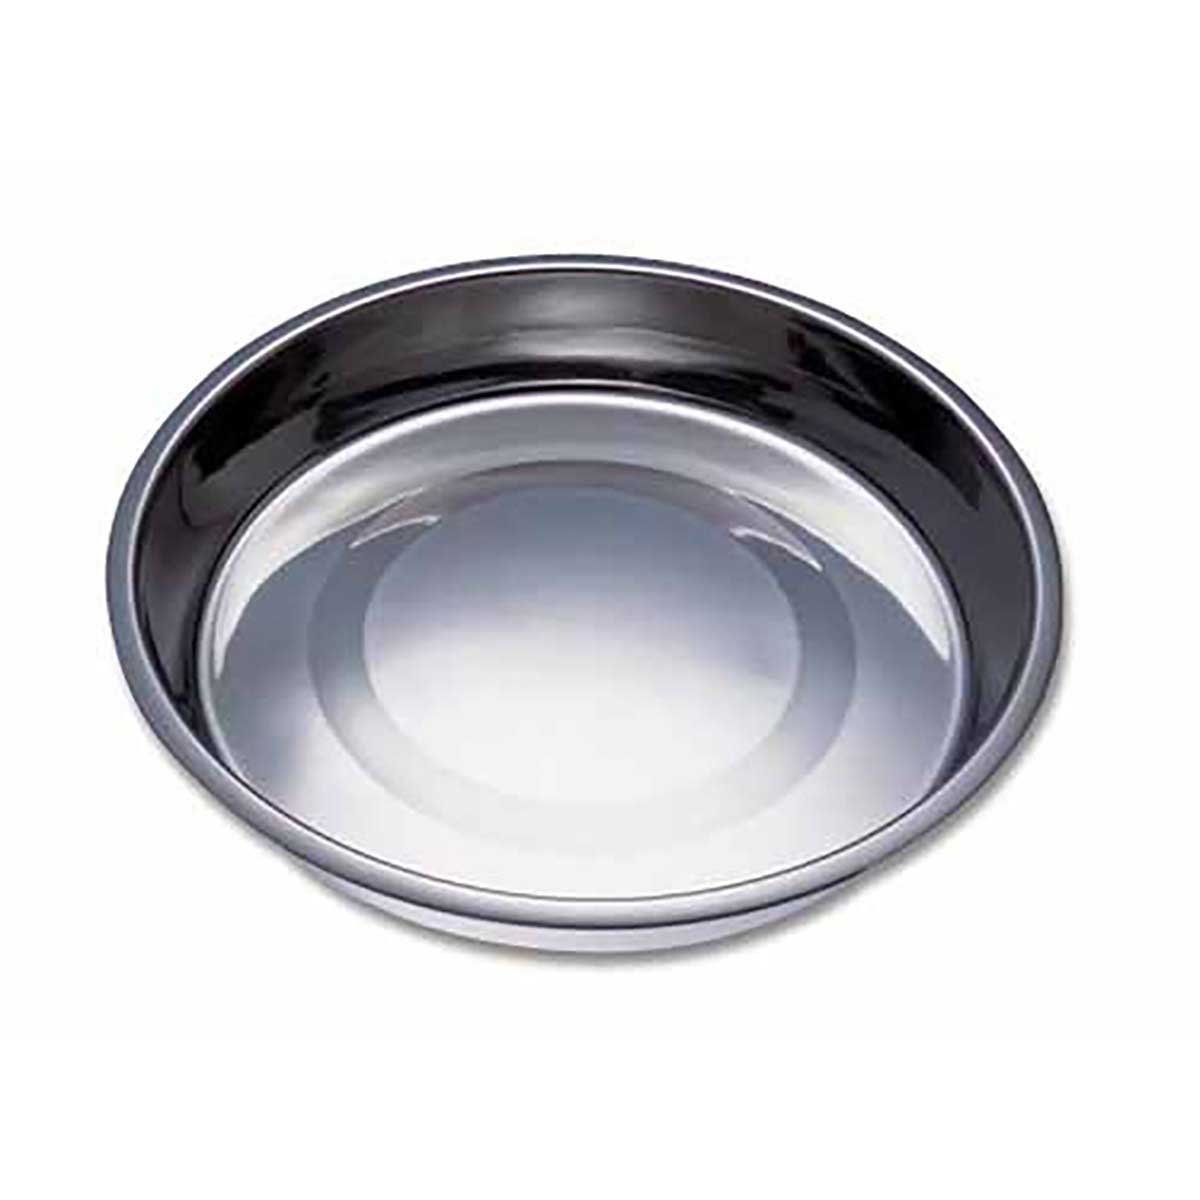 Indipets 8 inch Stainless Steel Puppy Pan